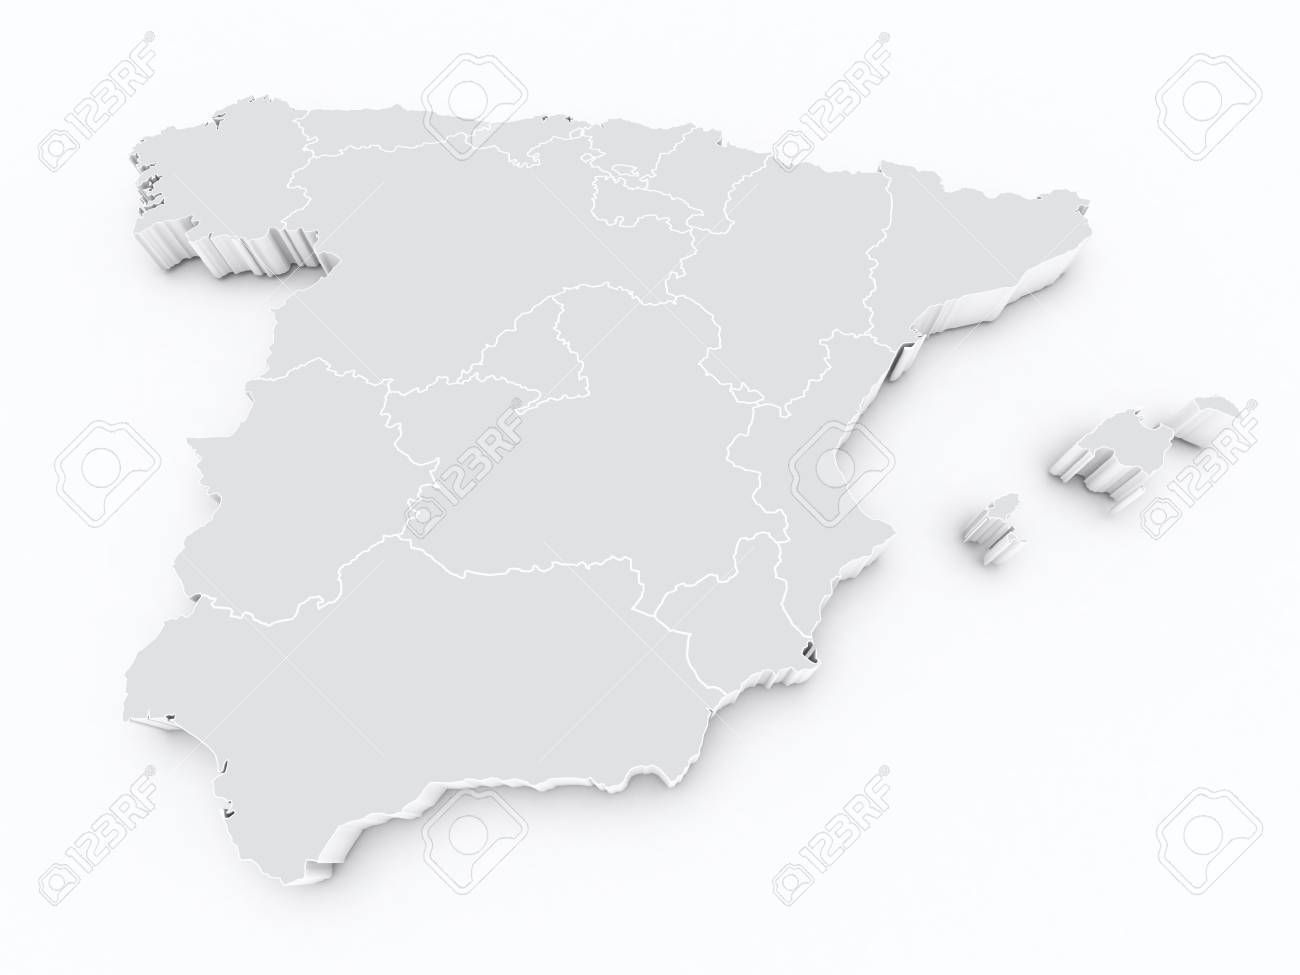 3d Map Of Spain.Spain Autonomous Communities 3d Map